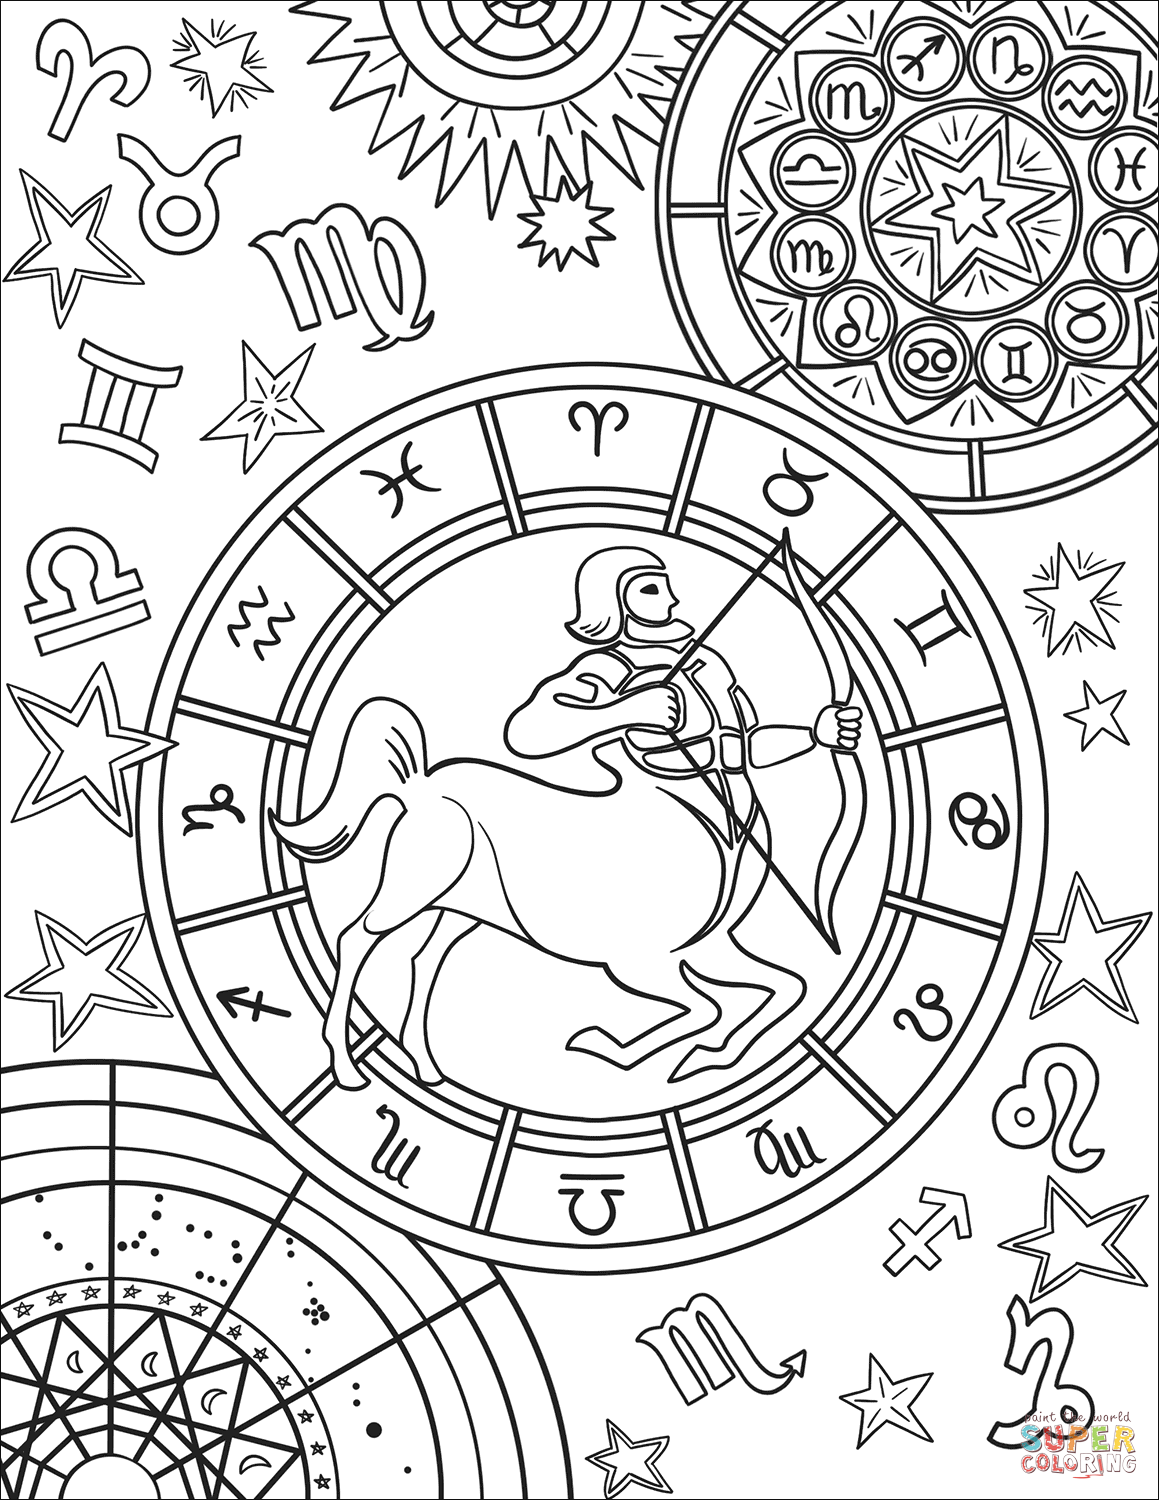 zodiac coloring pages scorpius zodiac sign coloring page free printable zodiac coloring pages